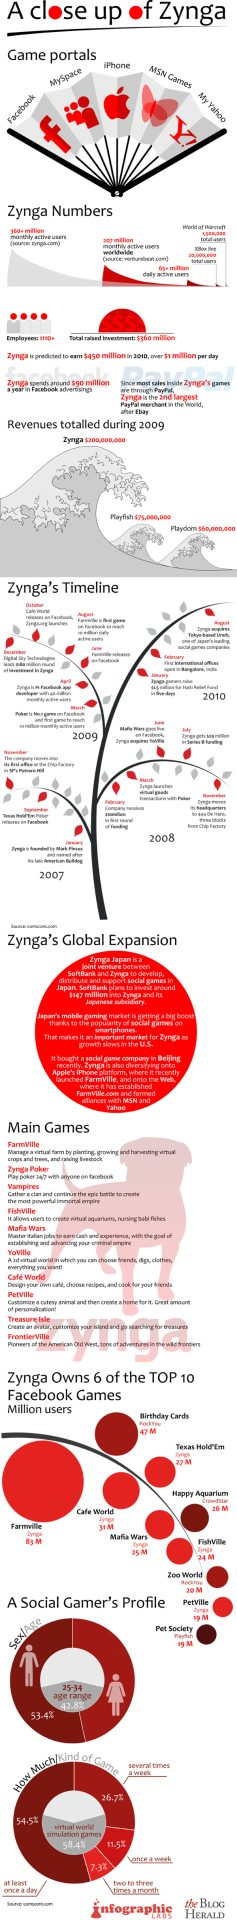 The Zynga Statistics: Games, Platforms, Timeline and Revenue Analysis